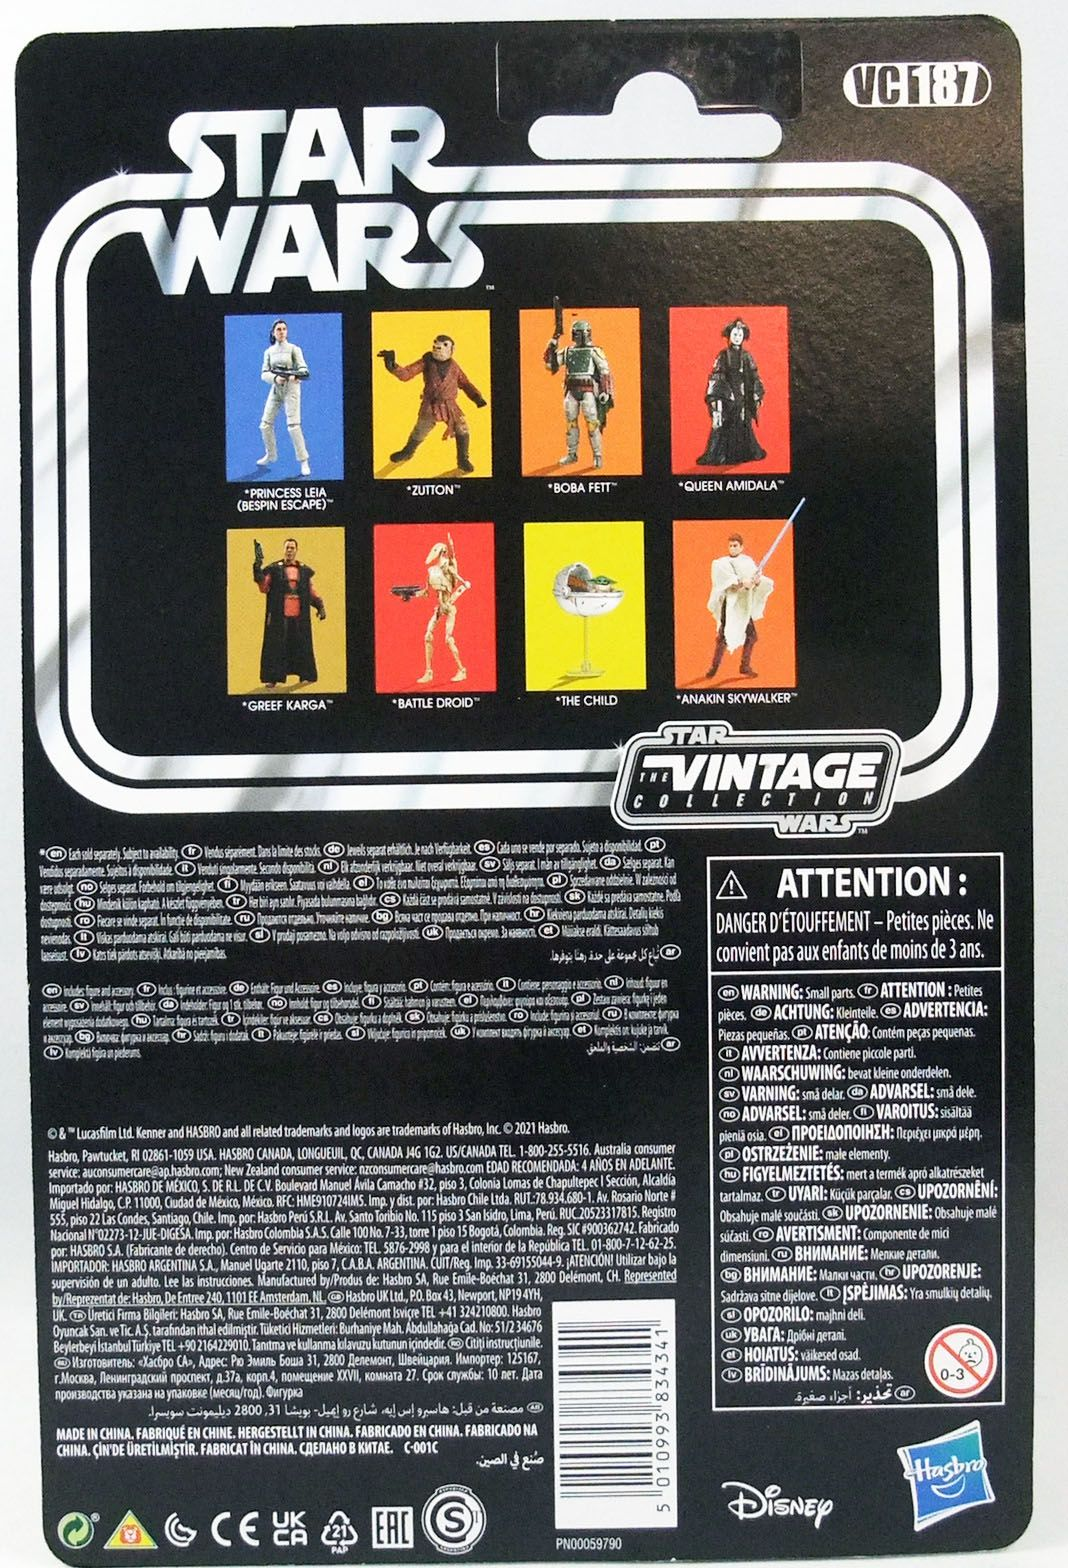 Star Wars (The Vintage Collection) - Hasbro - Princess Leia (Bespin Escape) - Empire Strikes Back